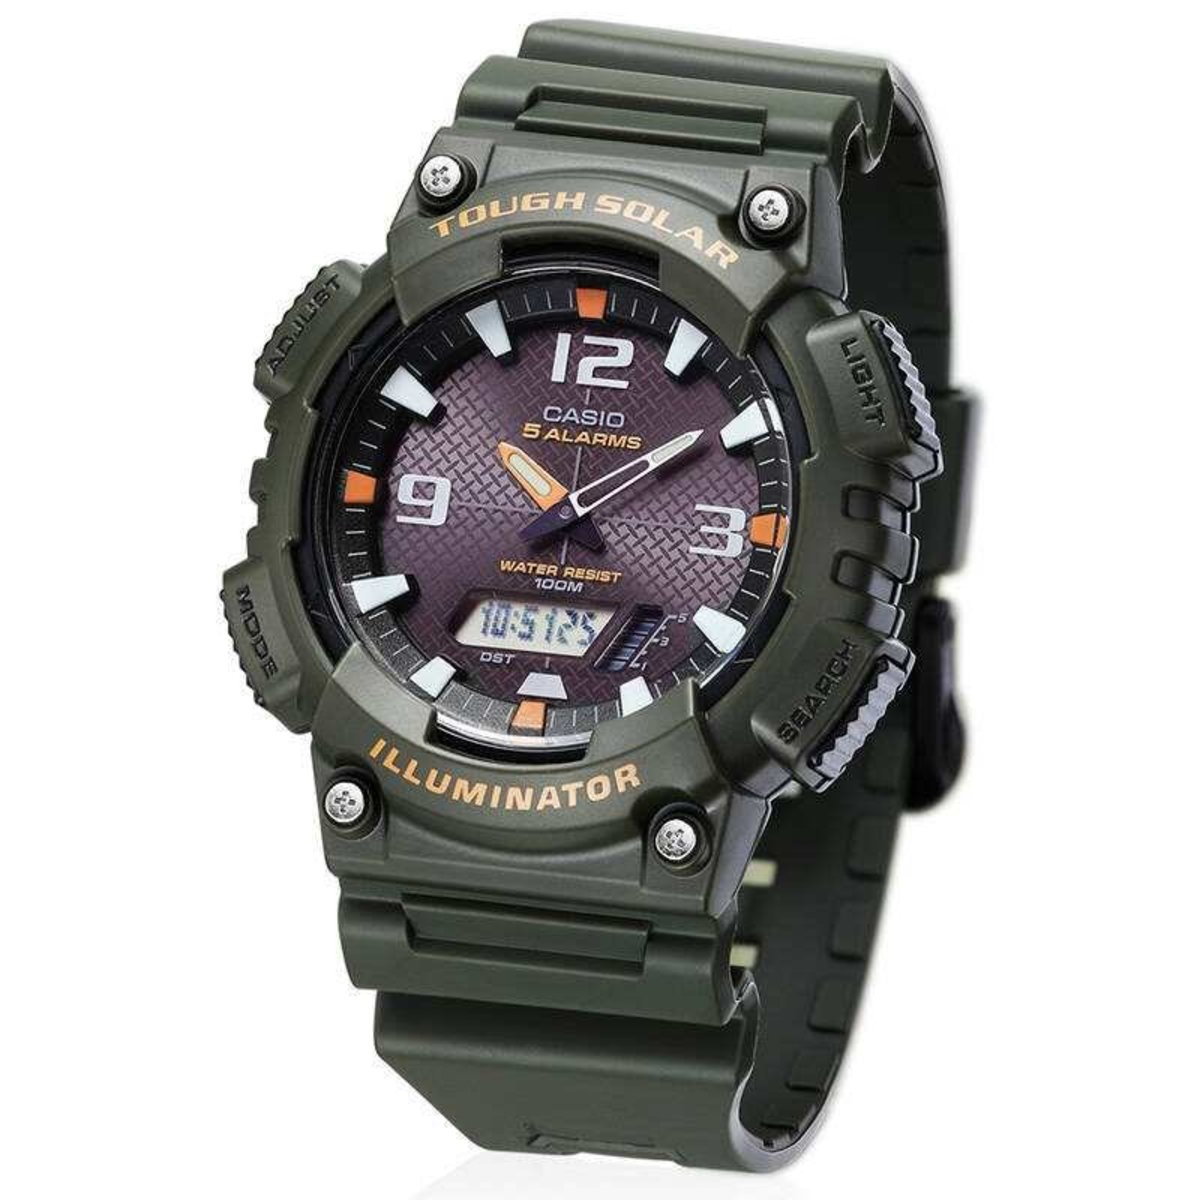 AQ-S810W-3AVDF (YOUTH SERIES) TIMEPIECES